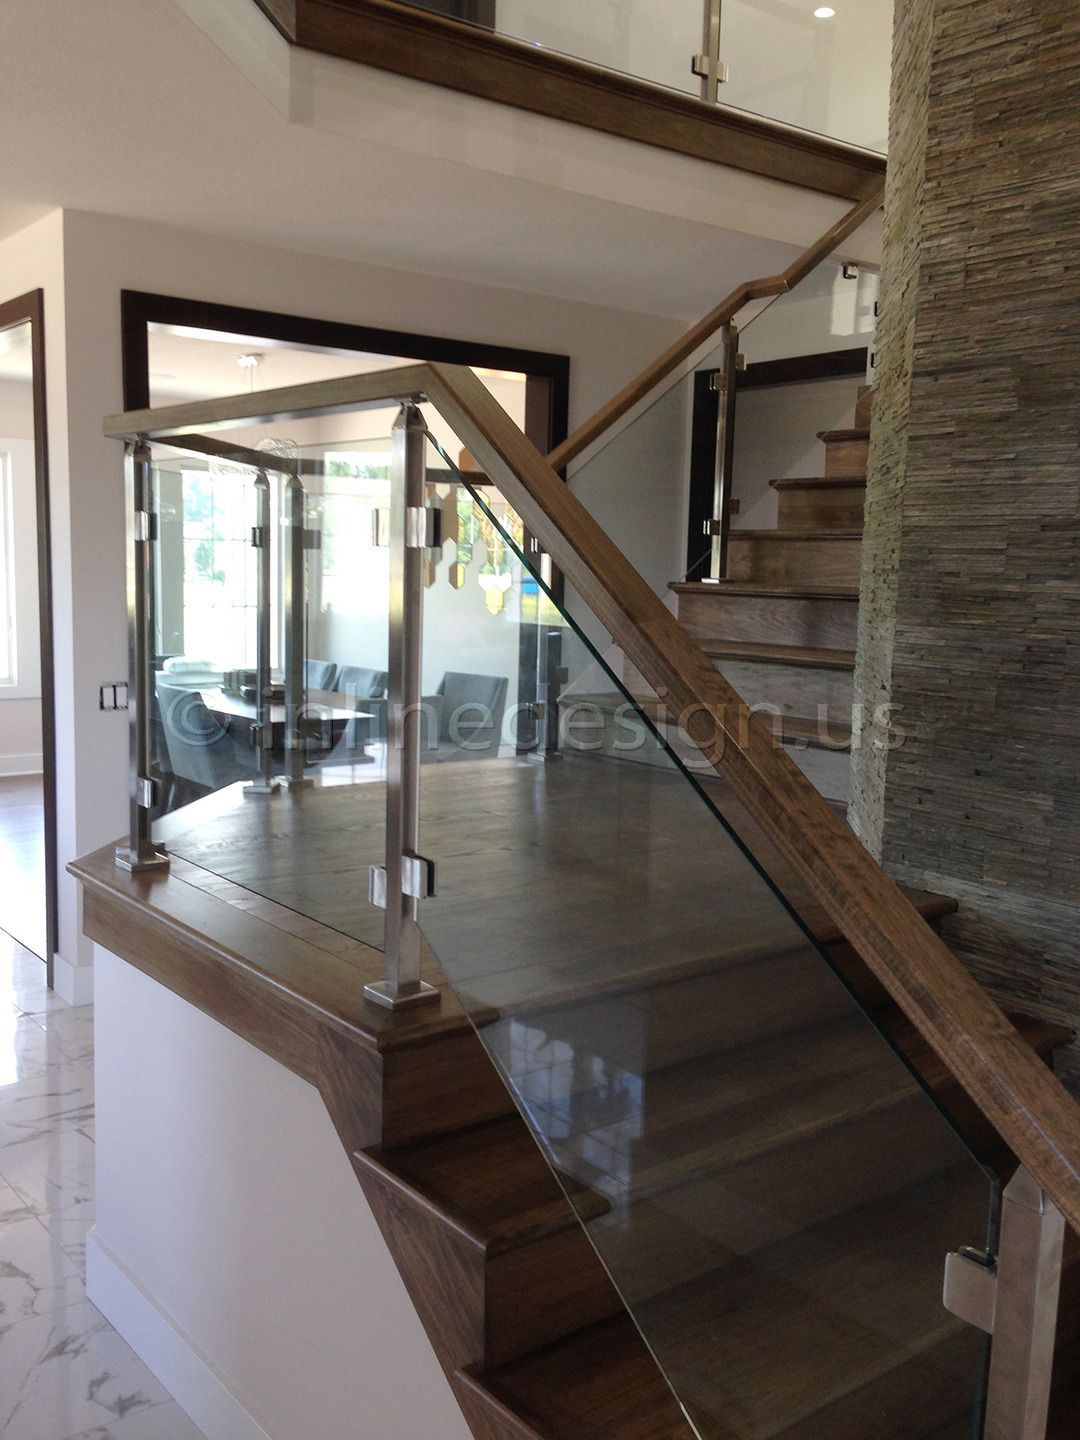 Glass Balusters For Railings Single Stainless Steel | Glass Balusters For Stairs